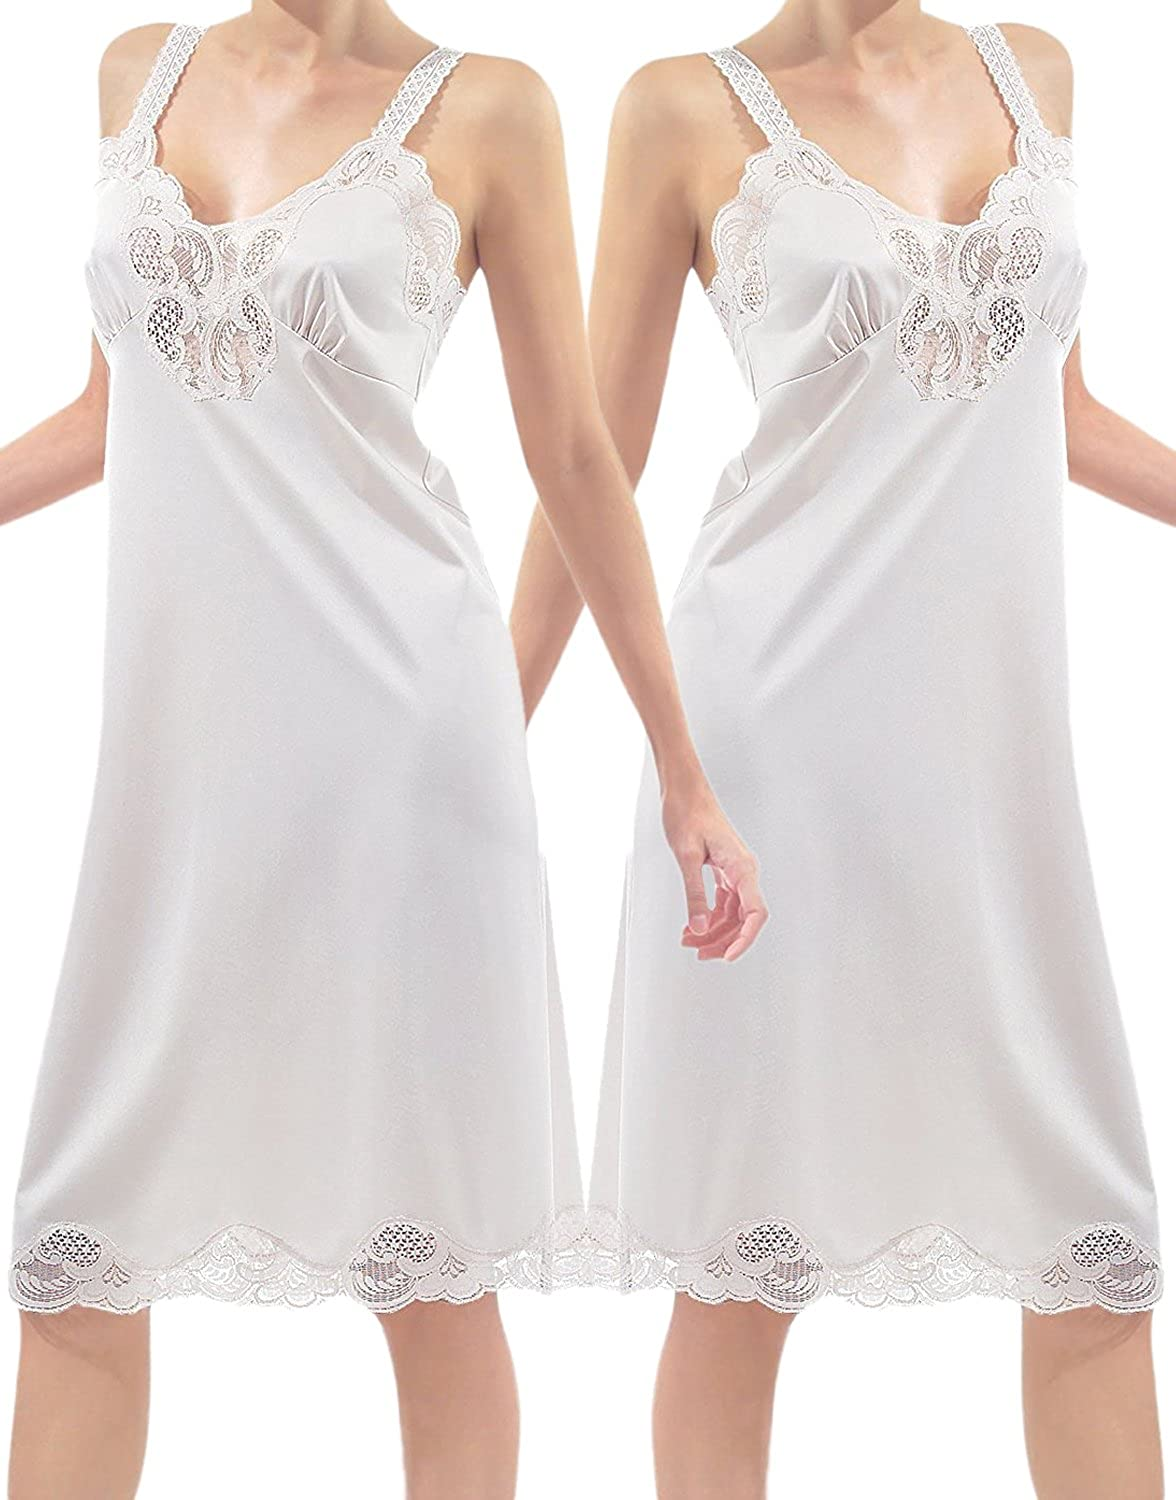 Under Moments Women Full Chemise Cami Slip Camisole Dress Nightgown 2 Pack UM-2012